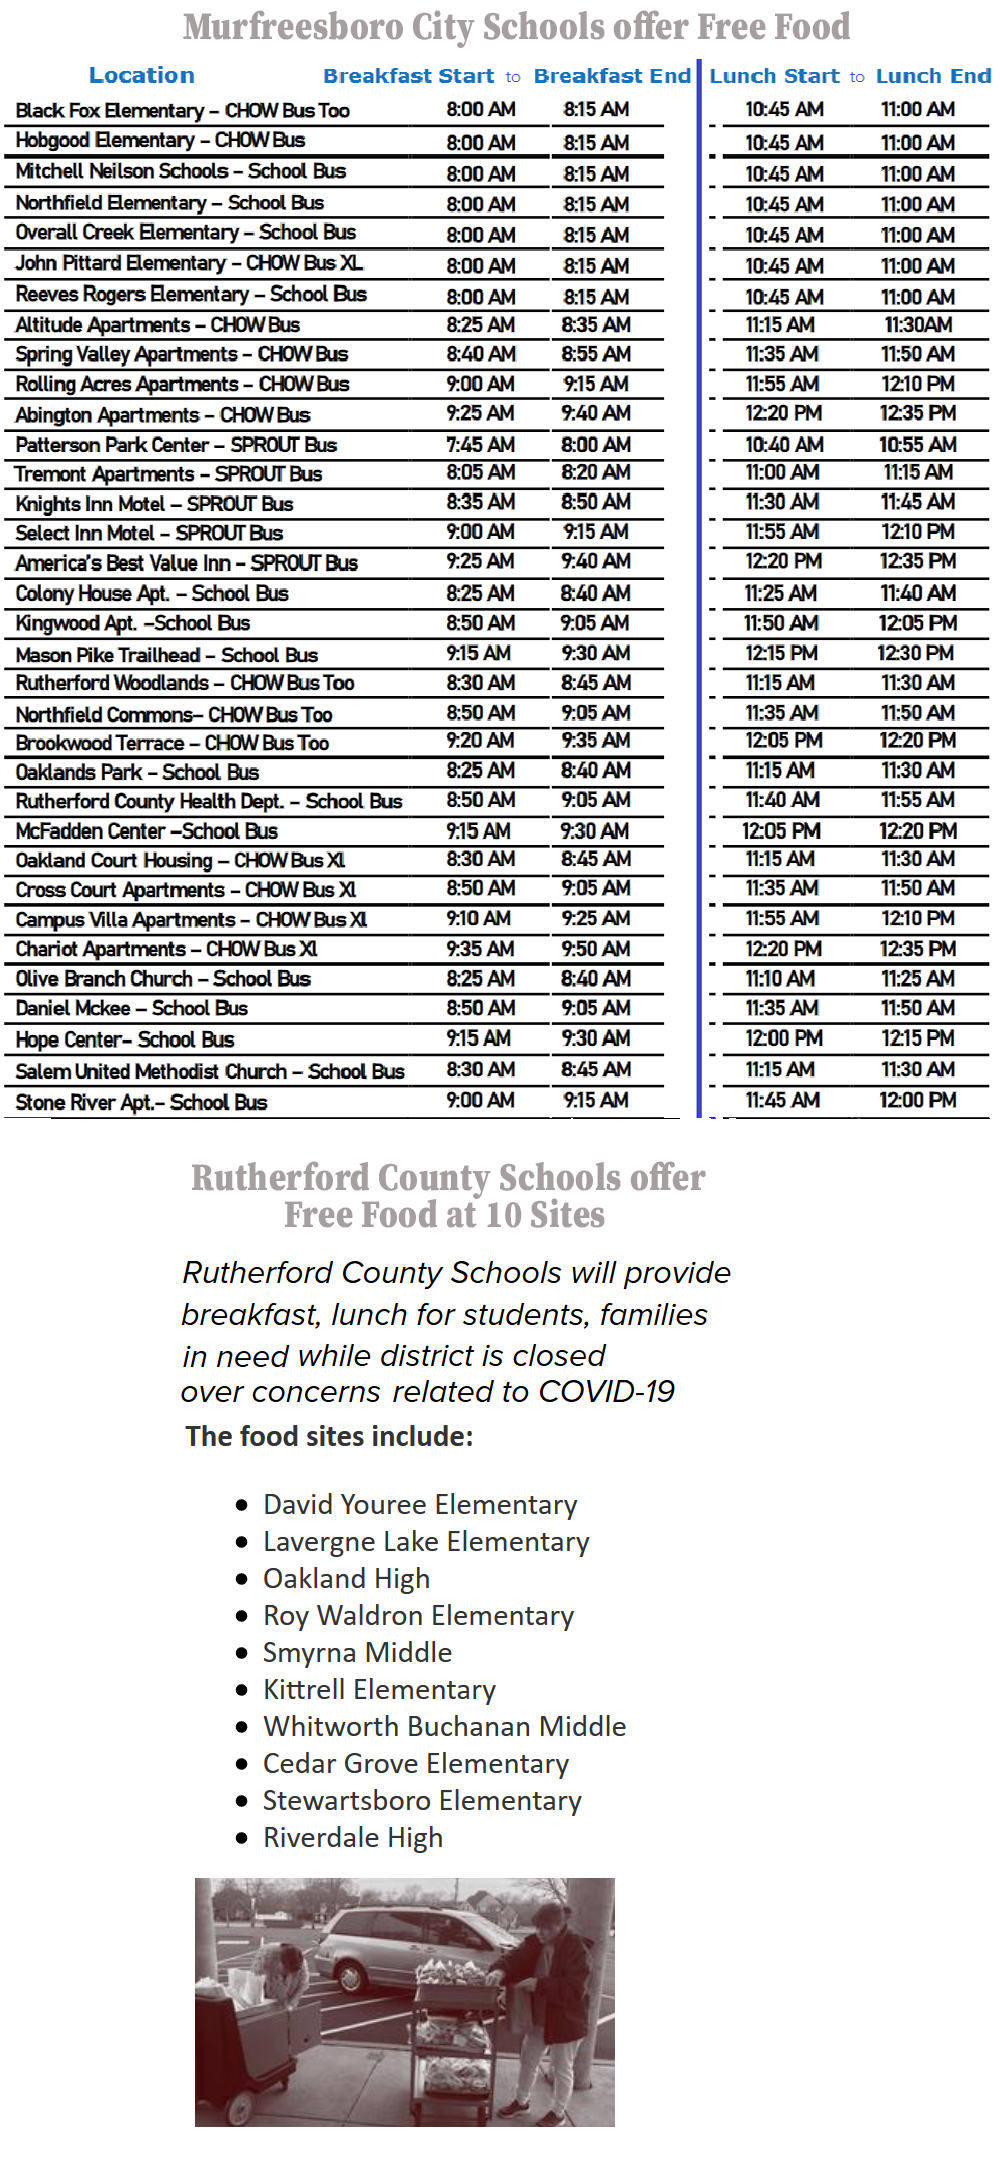 As income slows, more feeding sites are being opened. Murfreesboro City Schools Director Dr. Linda Gilbert stated...